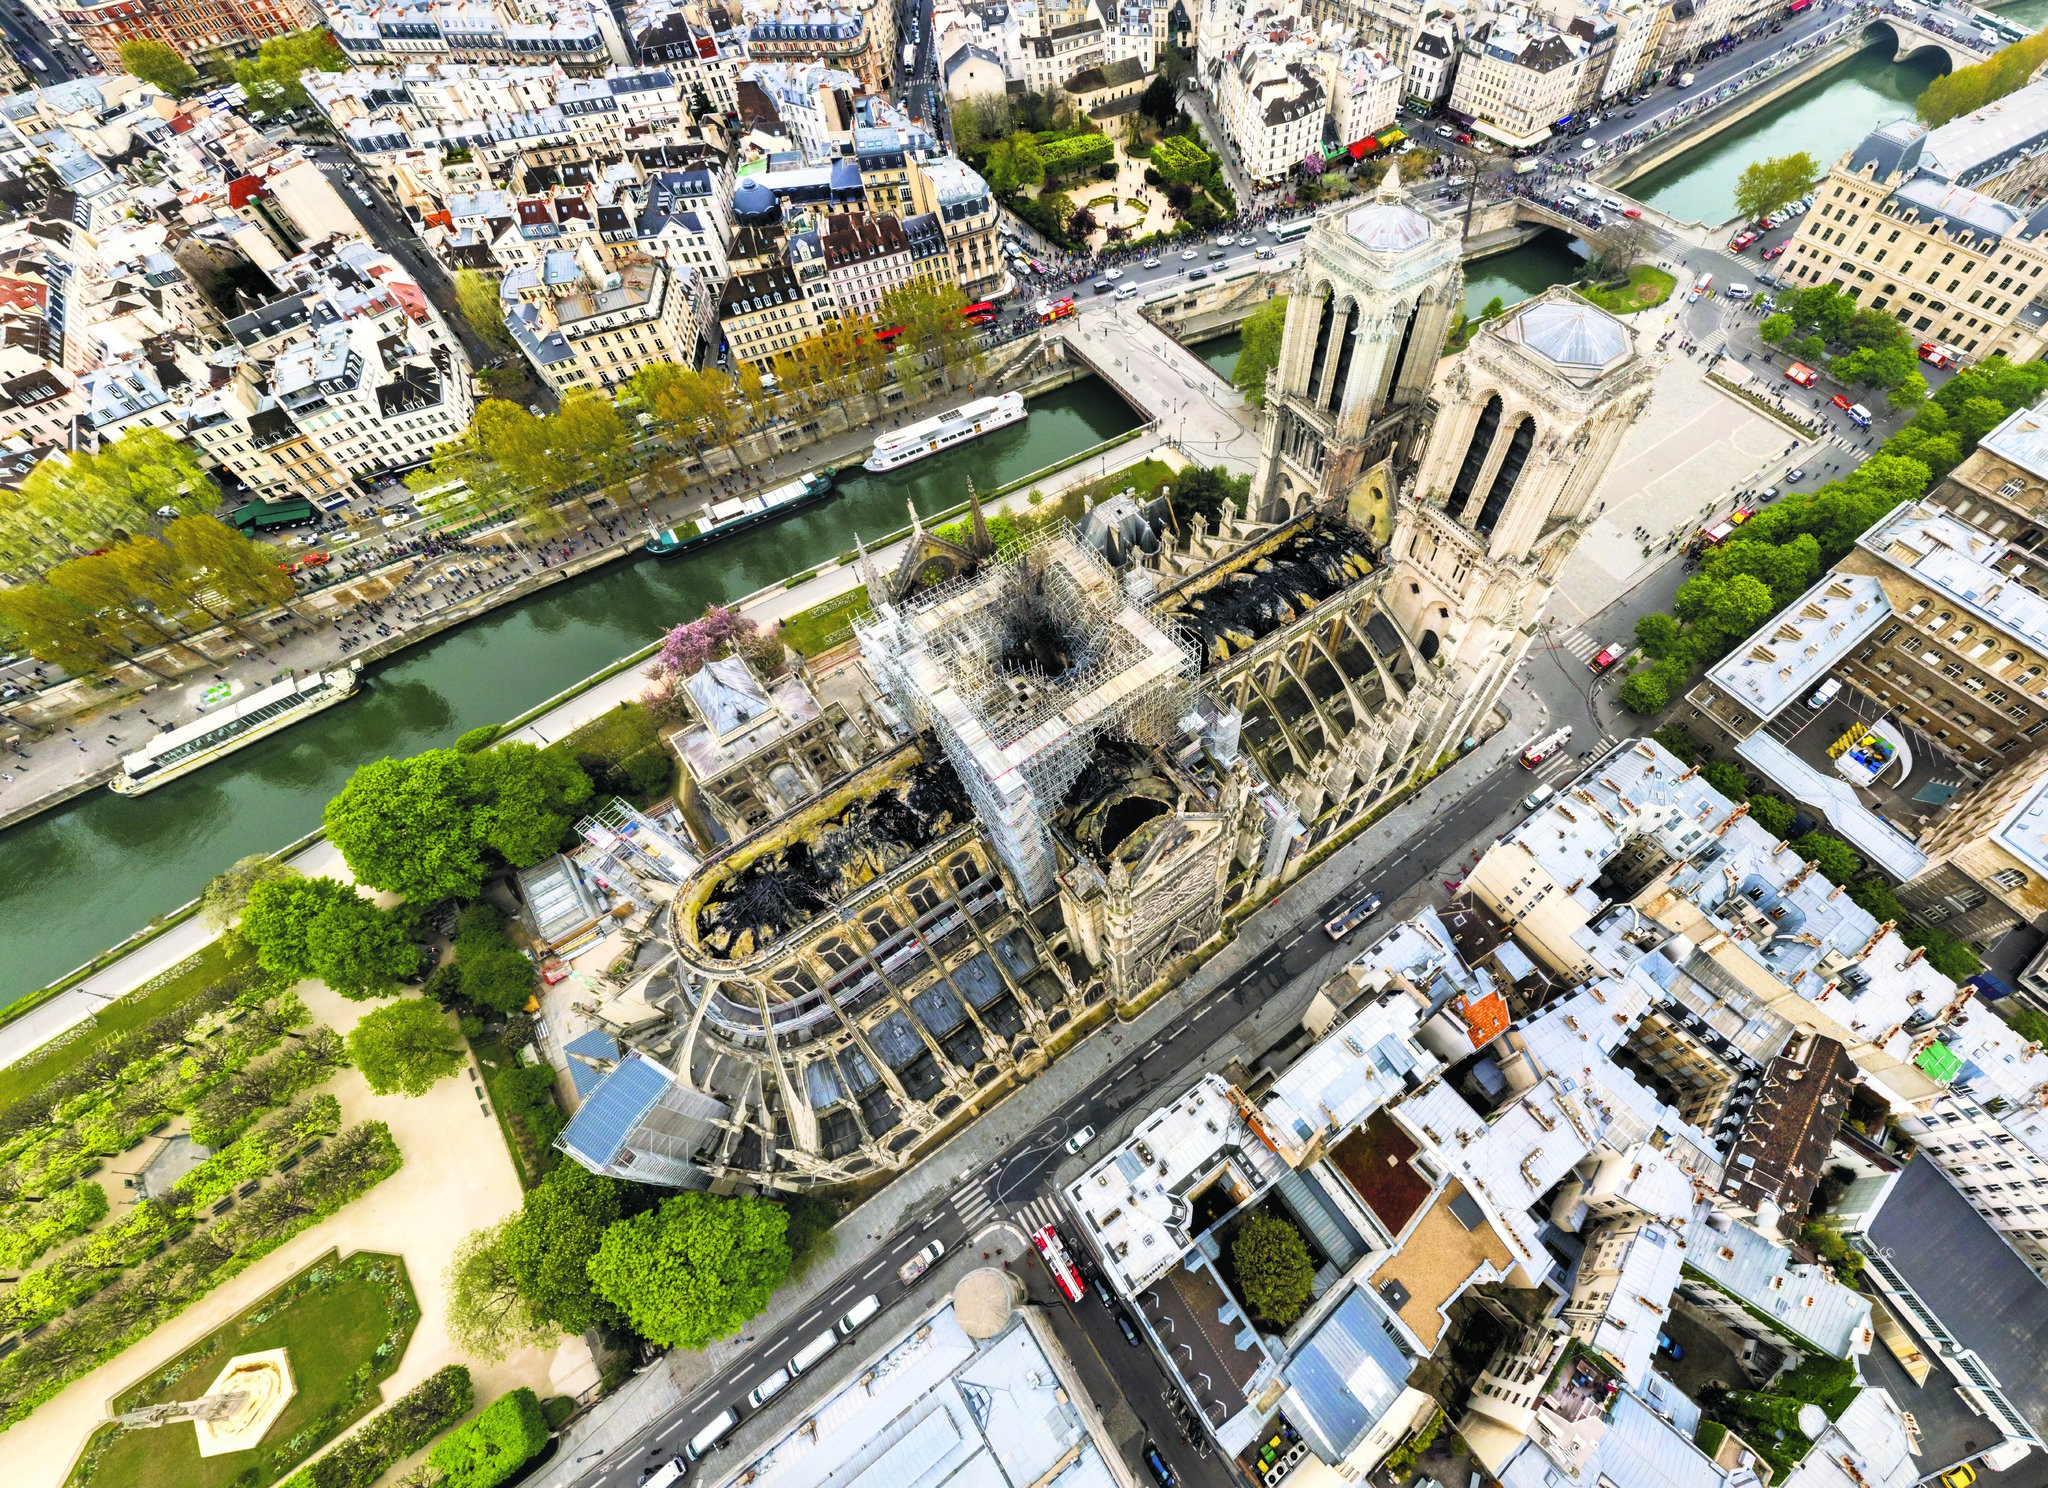 Adoddle Wants to Help Rebuild Notre Dame - the Heart of France